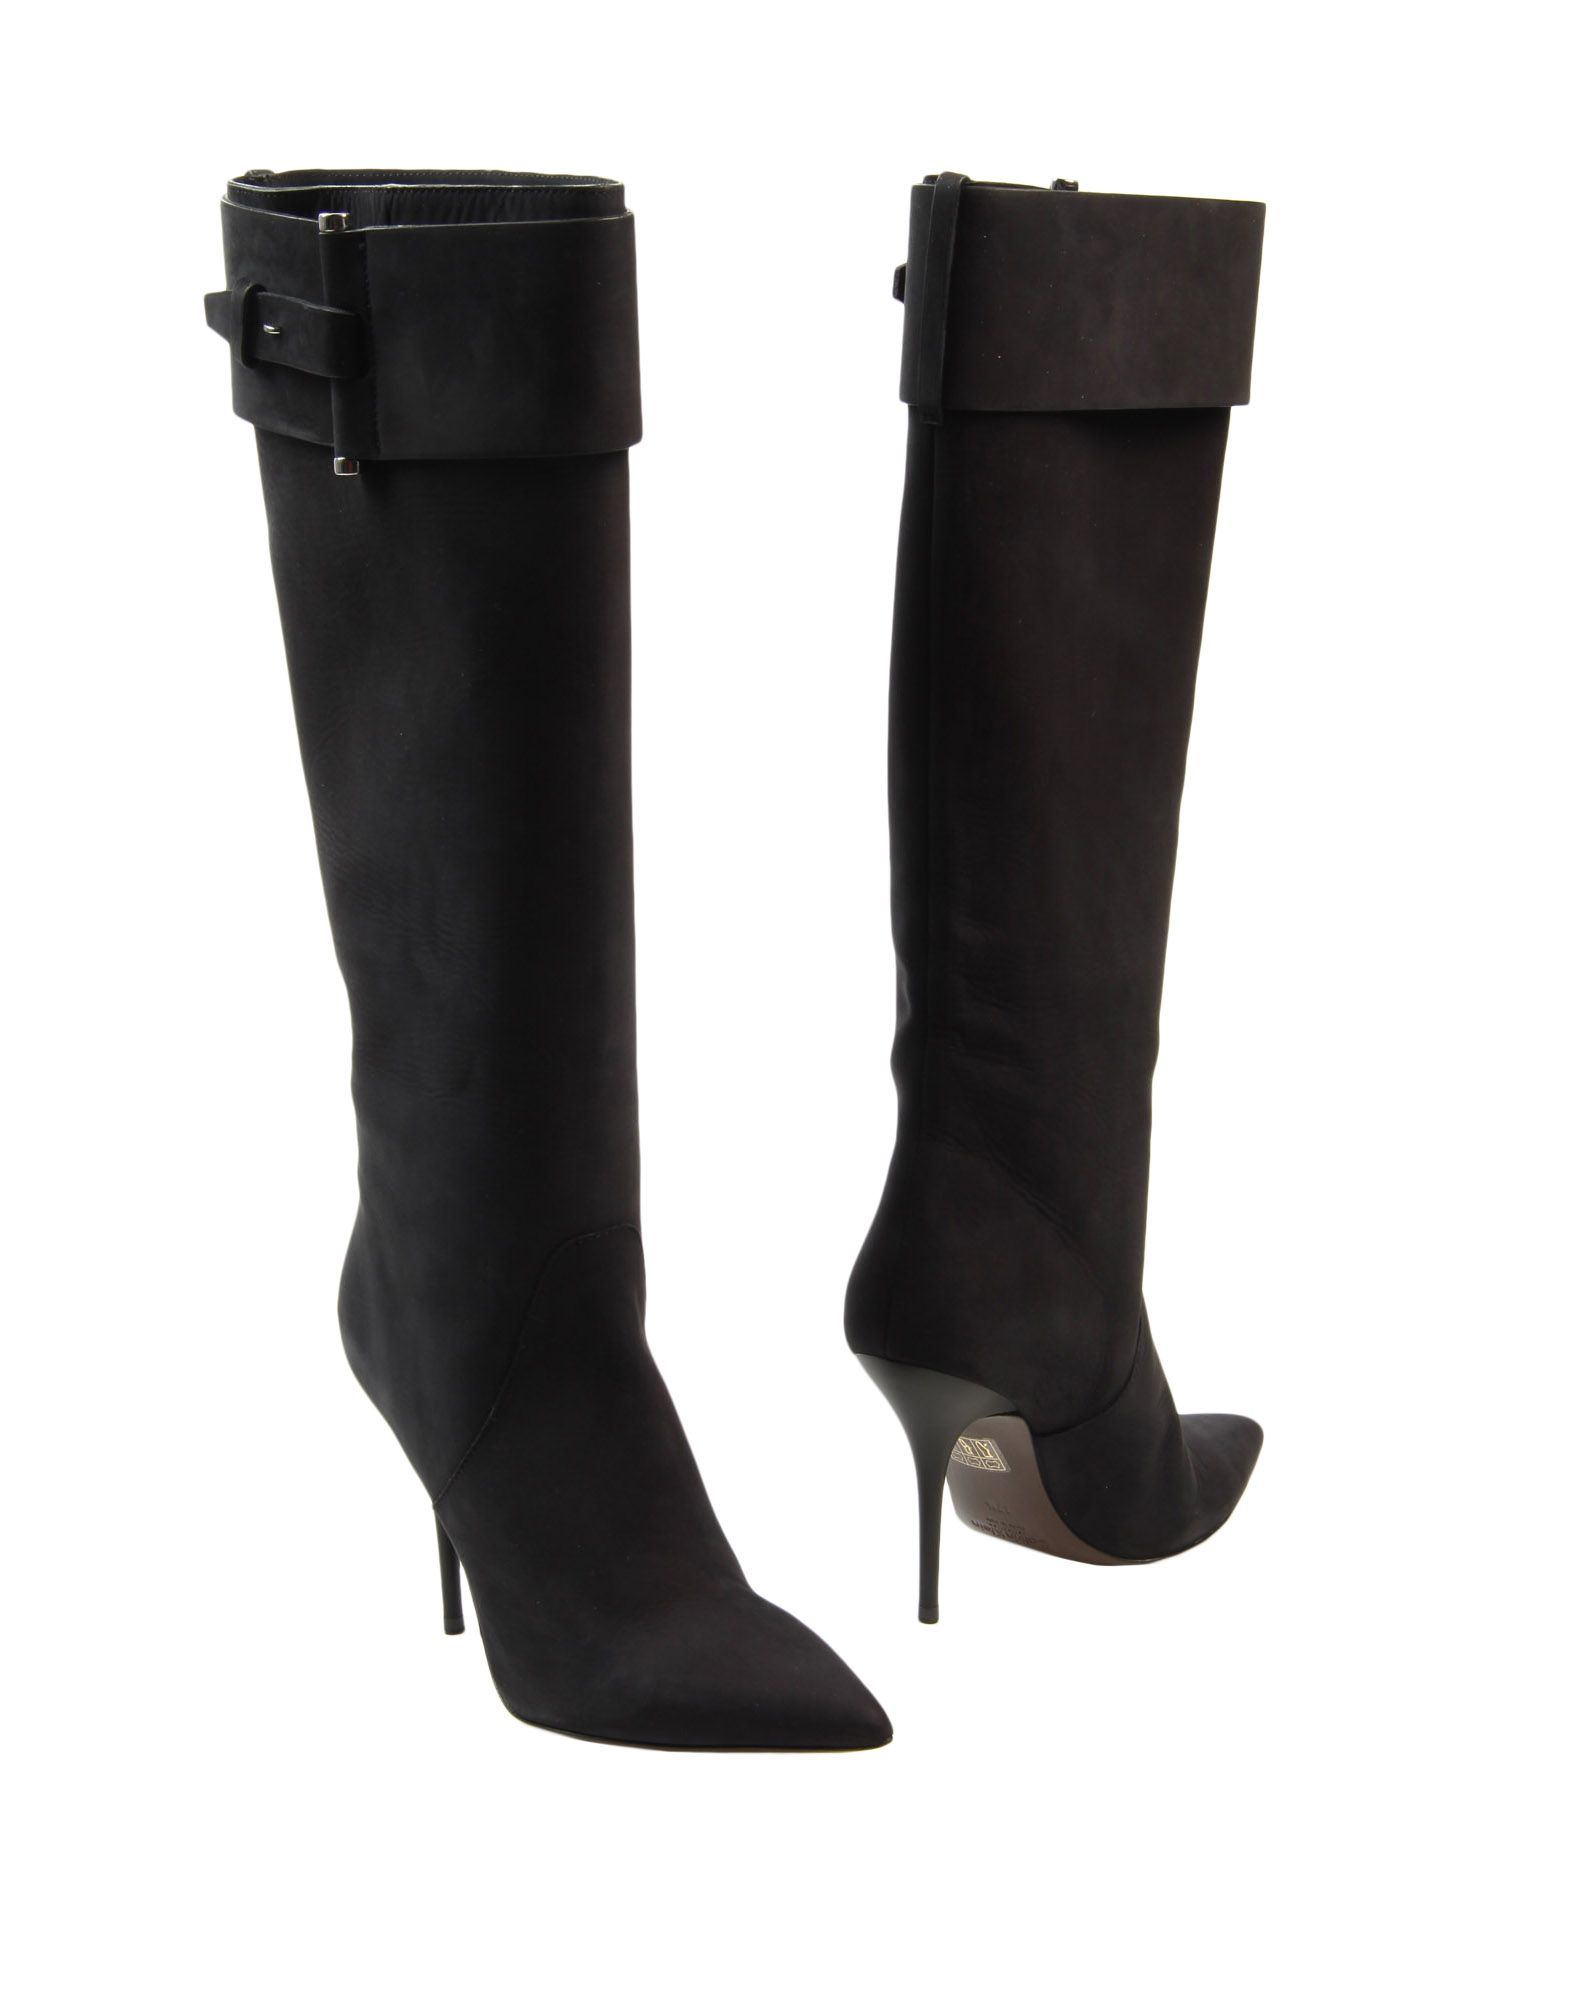 calvin klein high heeled boots in black save 49 lyst